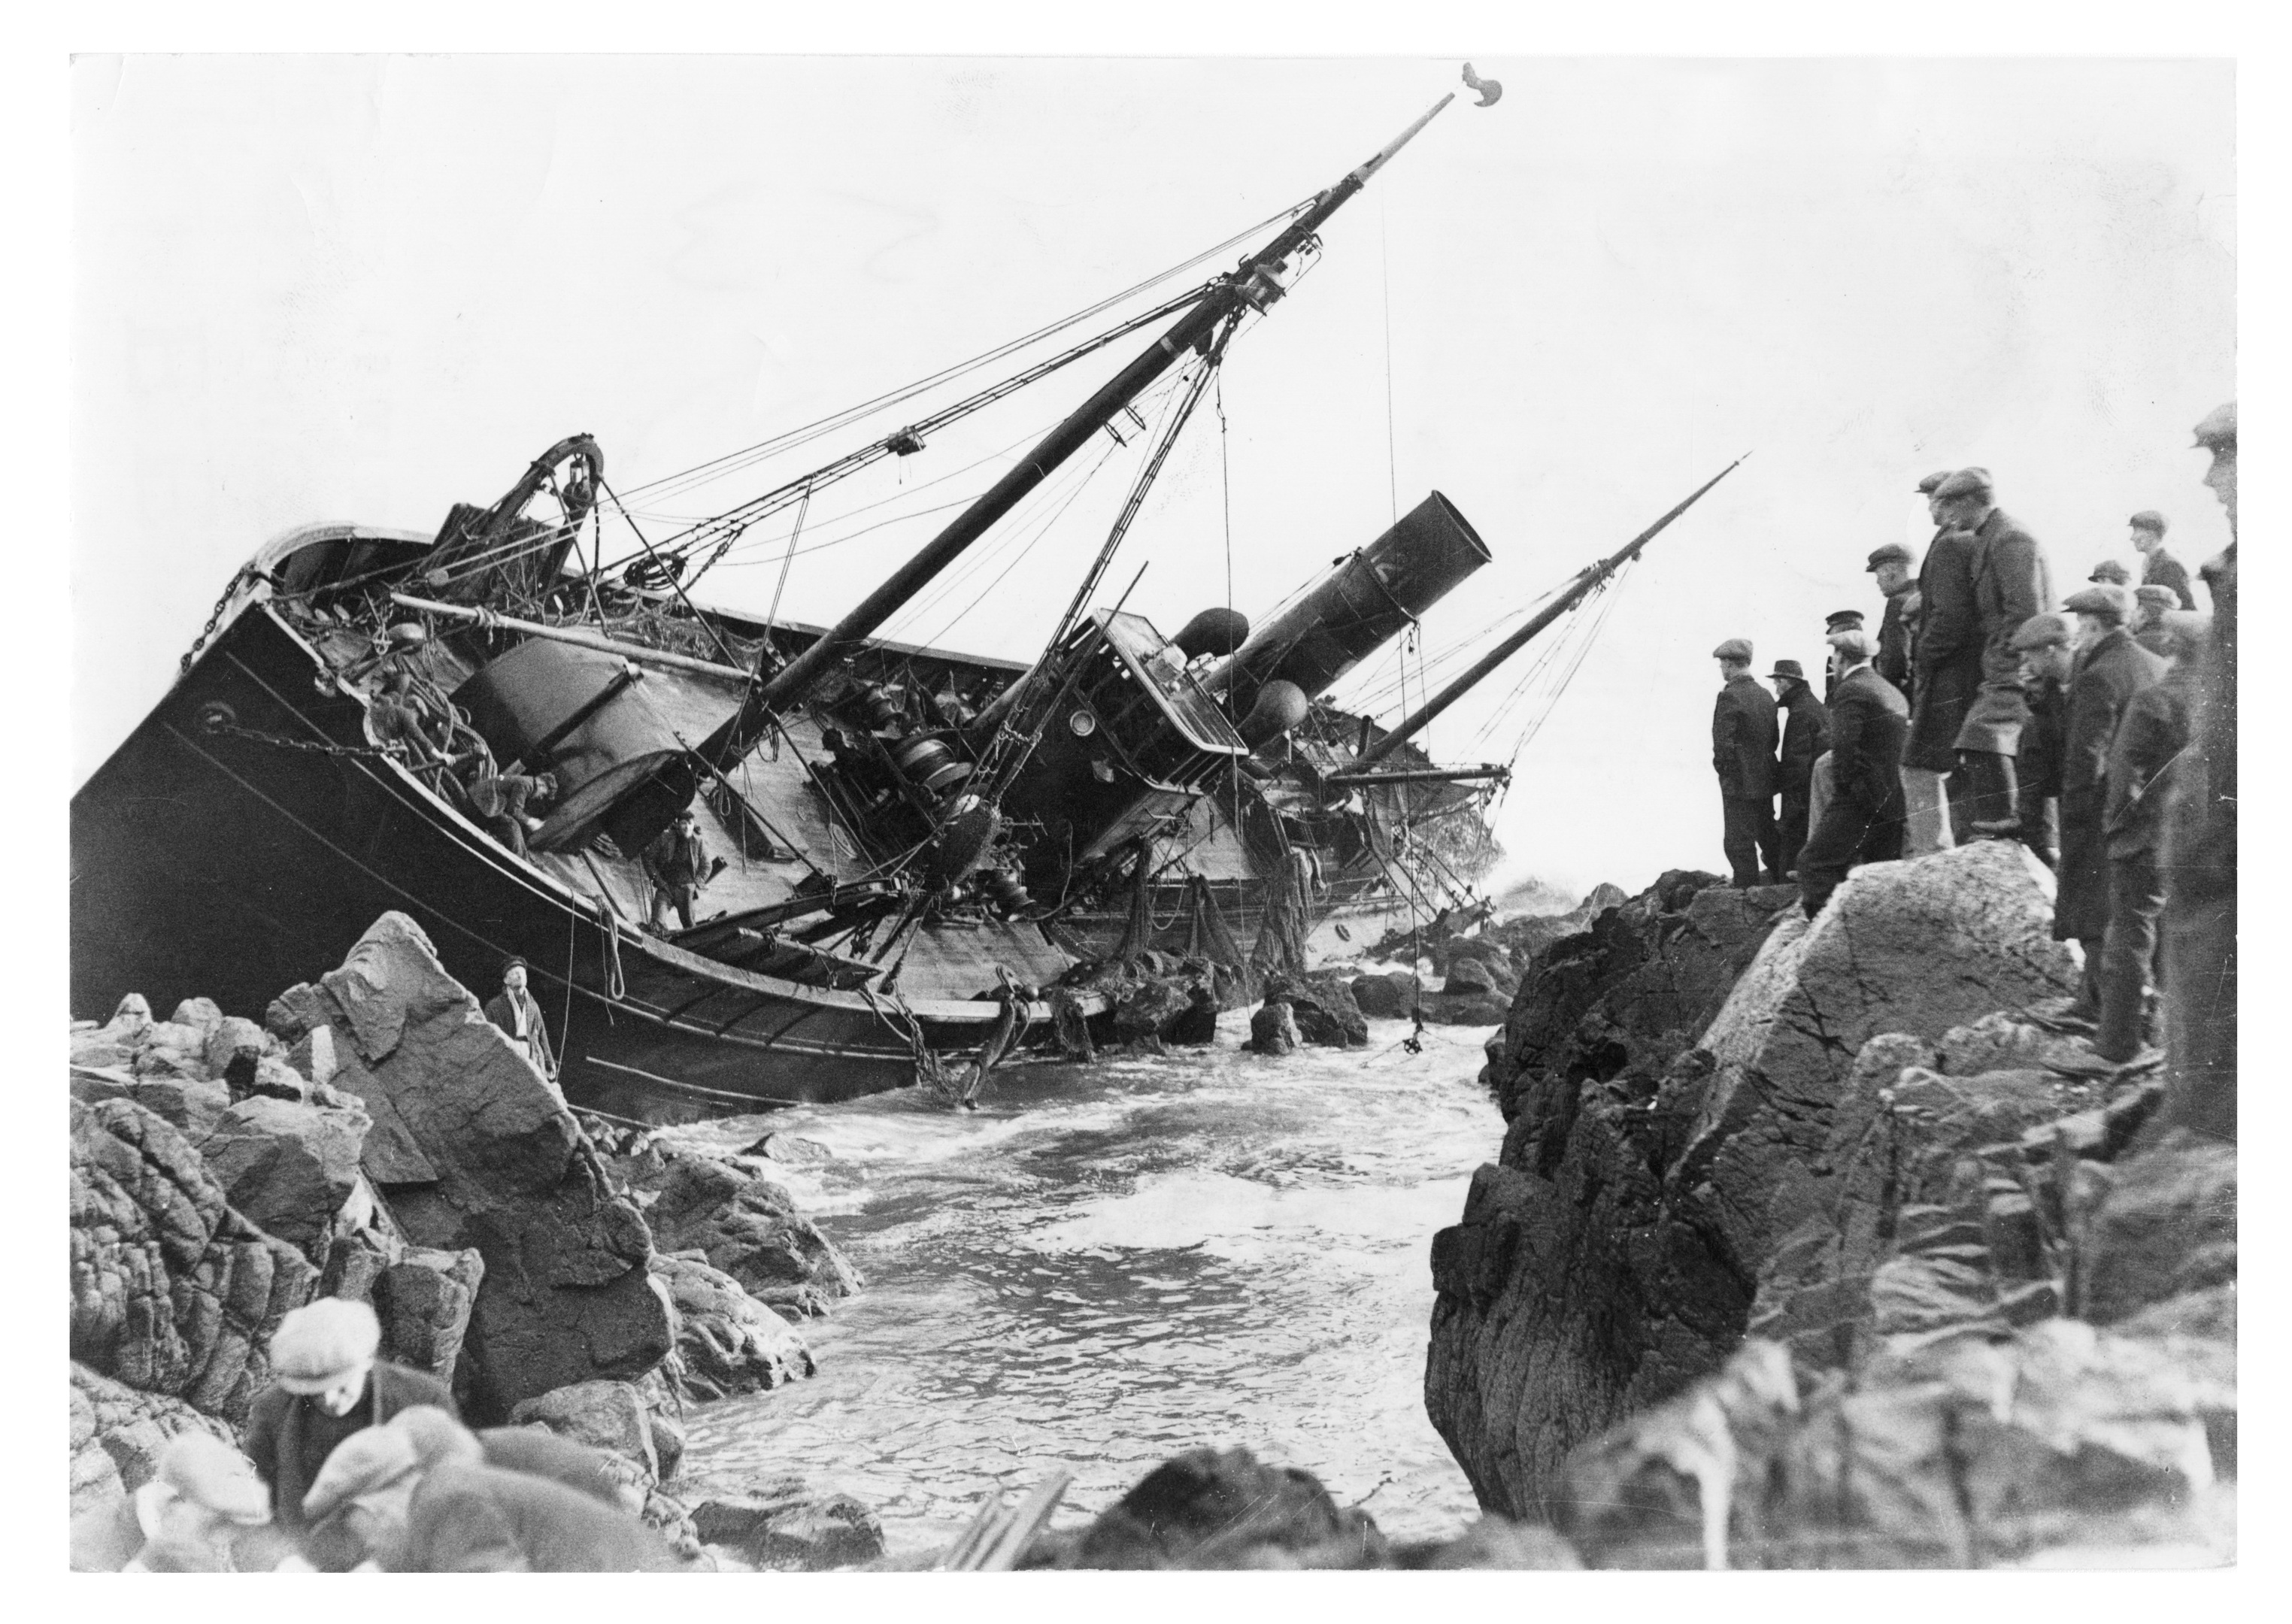 The Ben Screel, which ran aground on the rocks at Girdleness in the early 1930s.